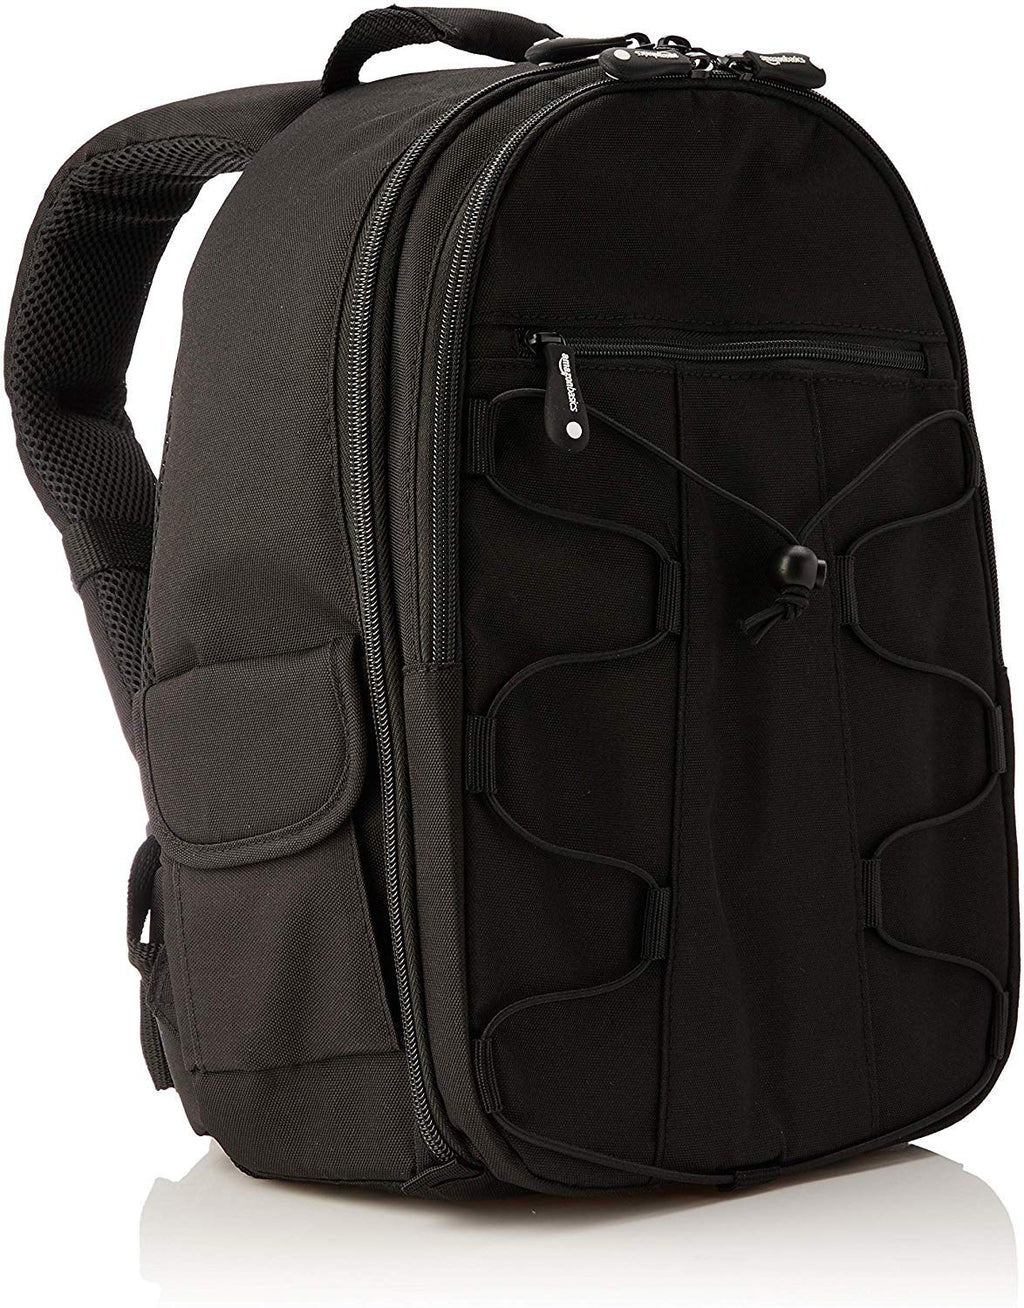 Camera Travel Backpack - yrGear Australia